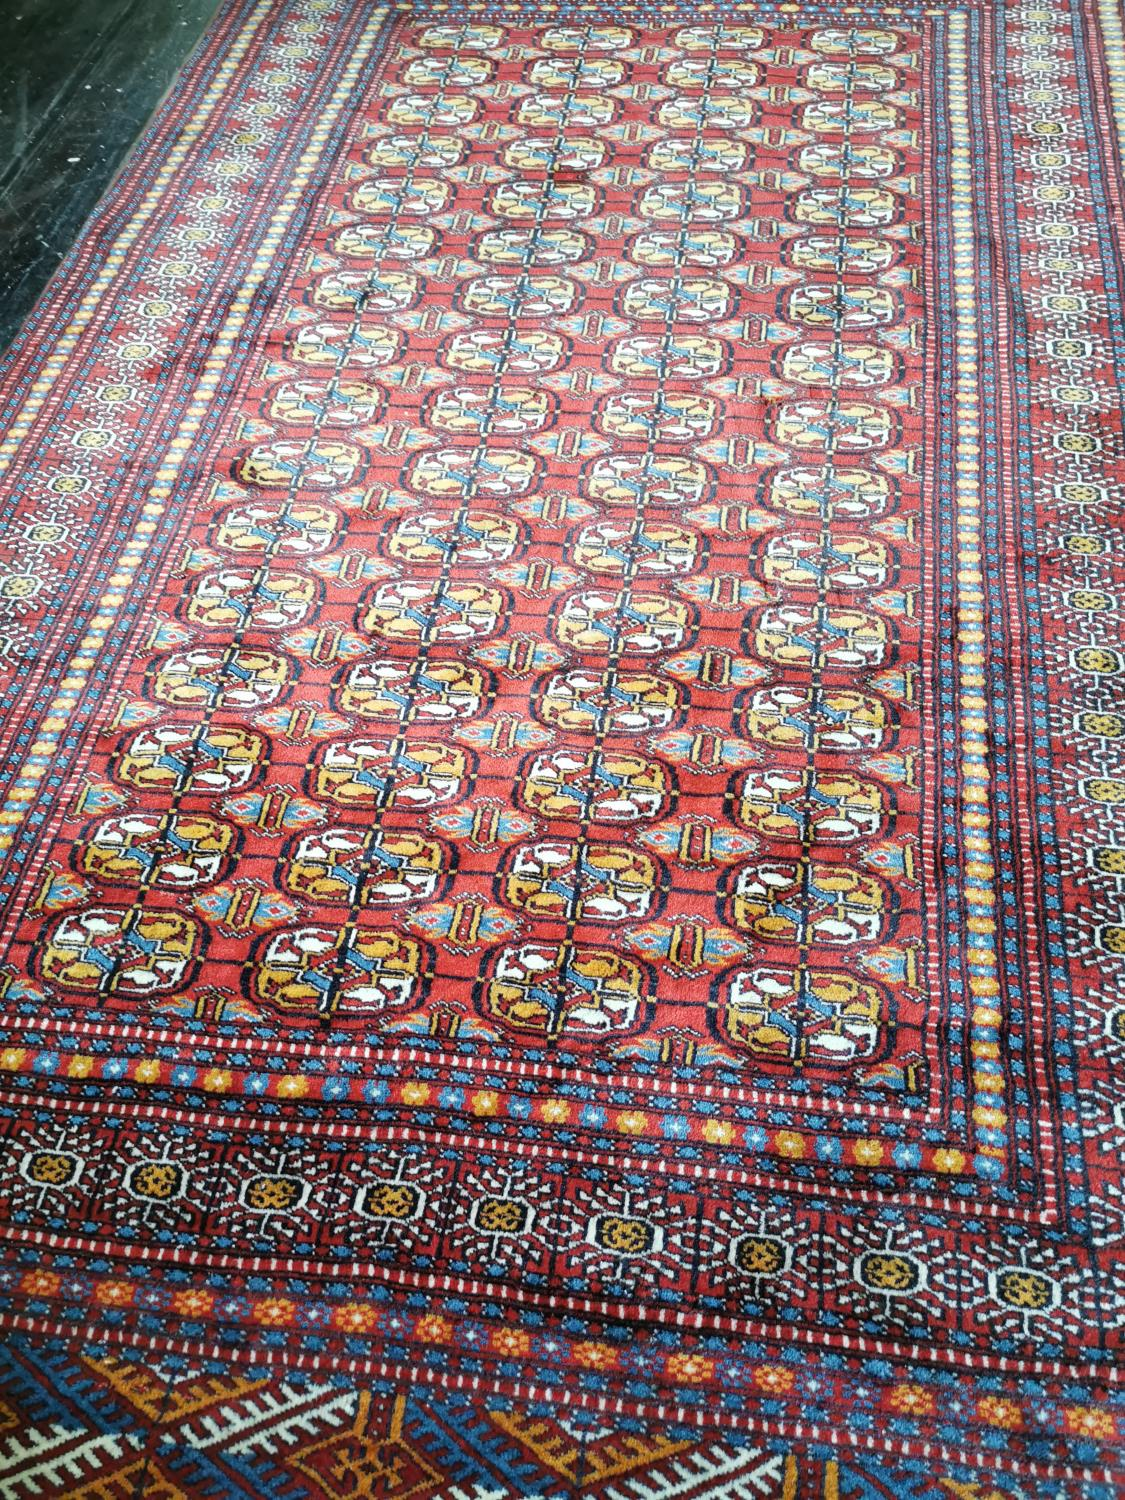 Persian hand knotted wool carpet - Image 2 of 2